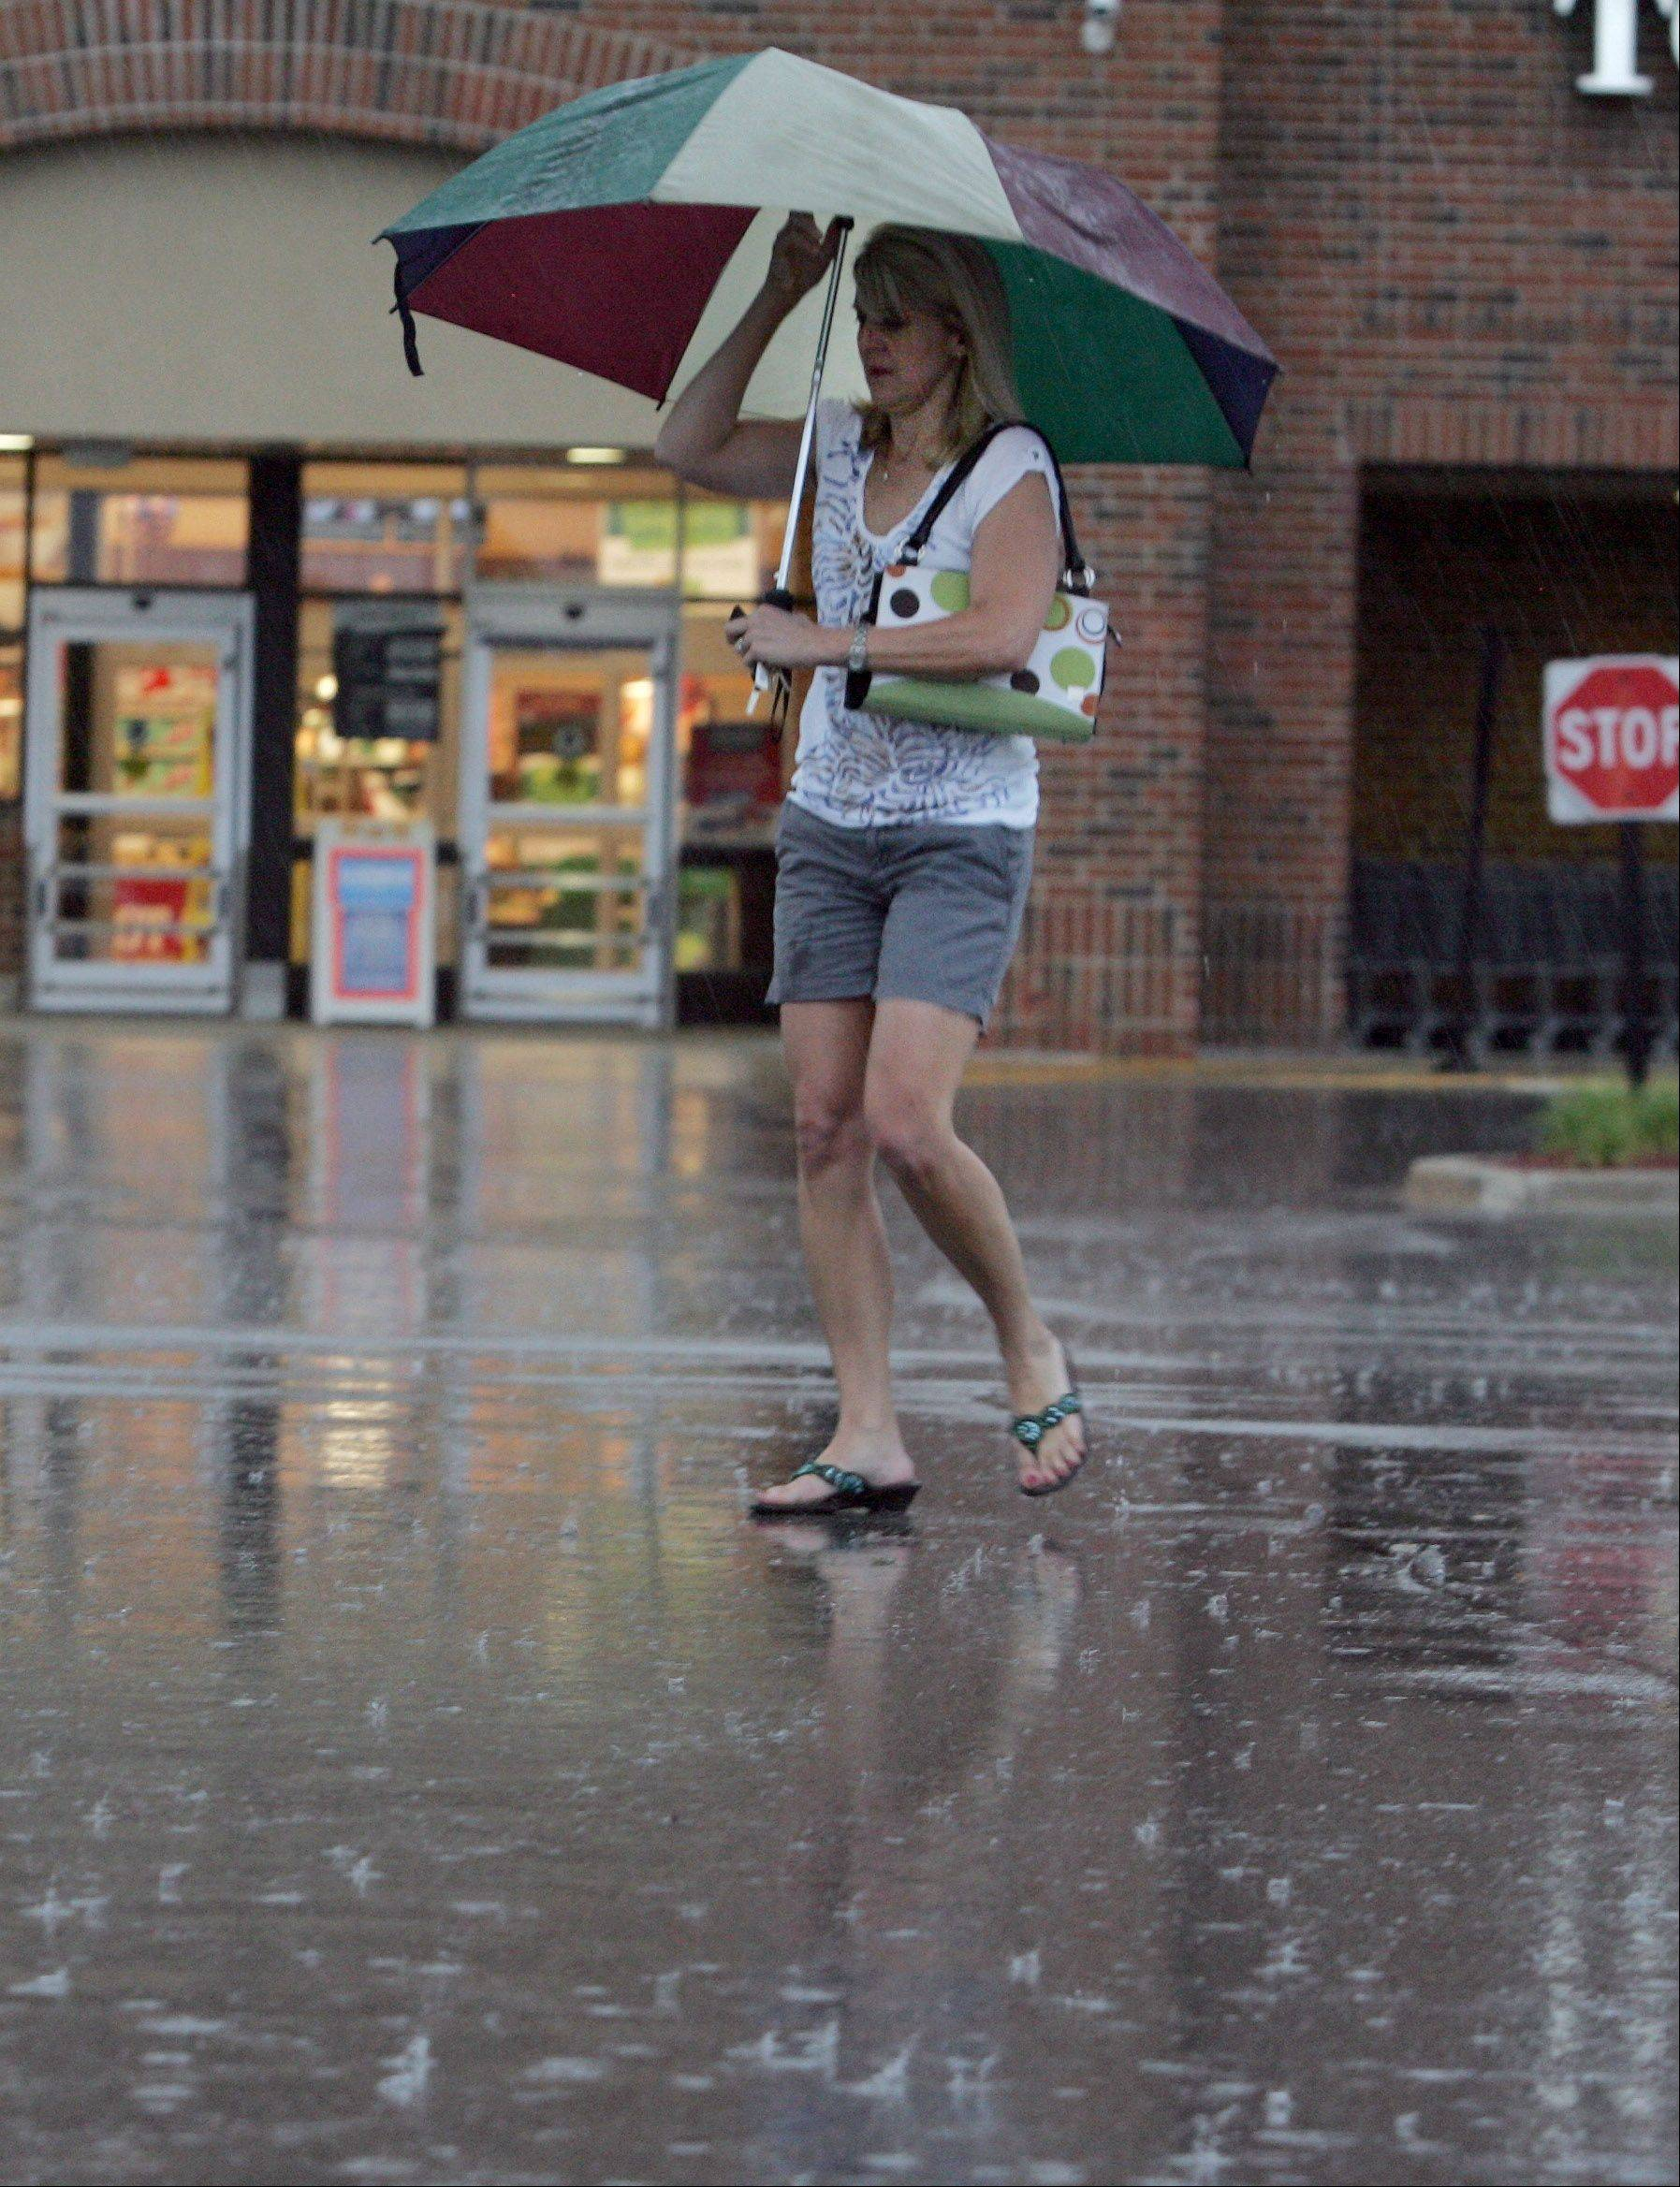 Lisa Balon of Wheaton needed an umbrella as she did her grocery shopping in Wheaton on Friday after storms and much needed rain moved into the Chicago area.